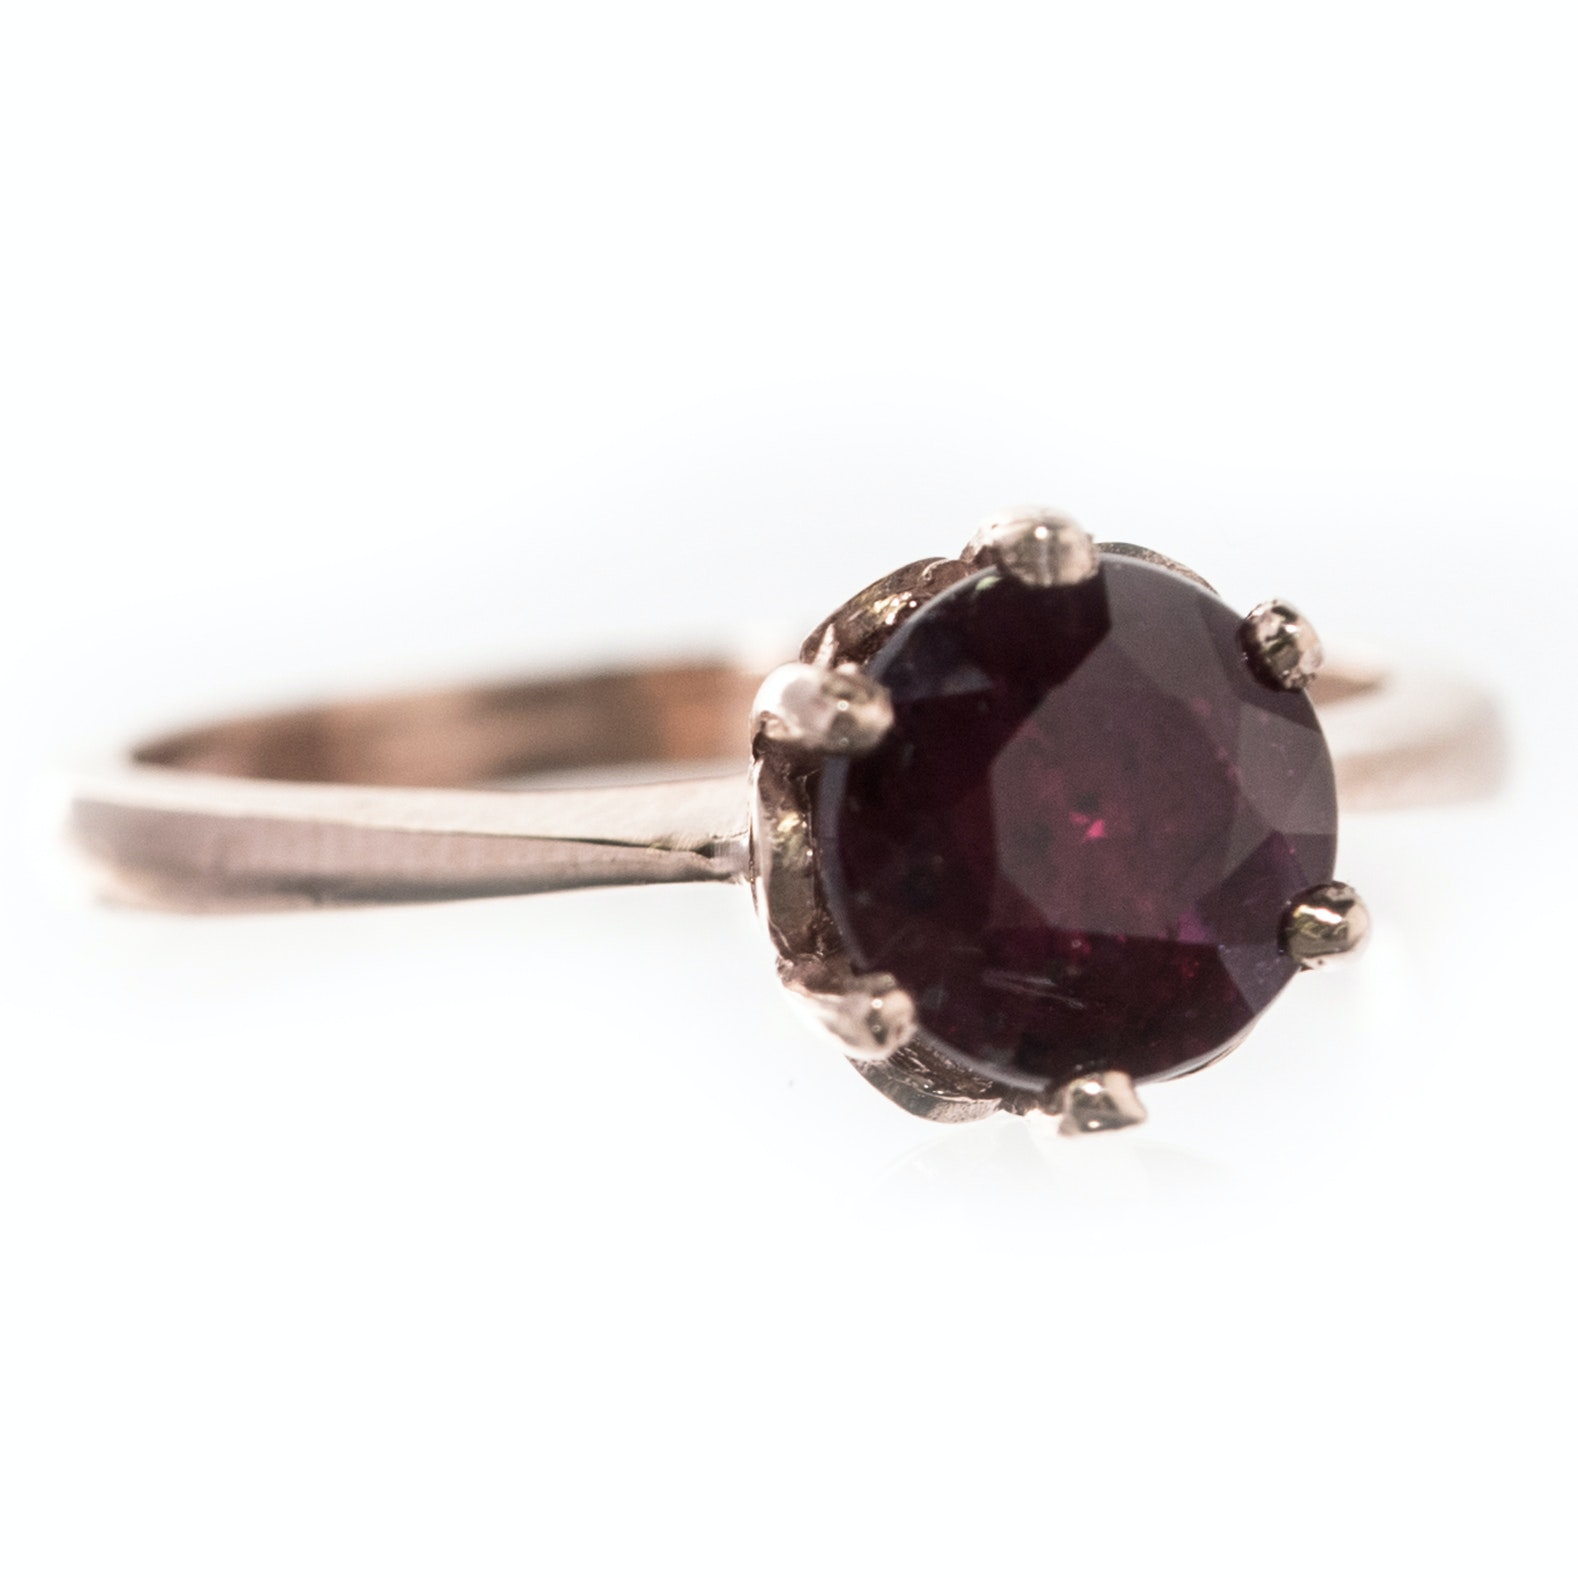 14K Rose Gold and 1.53 CT Ruby Ring